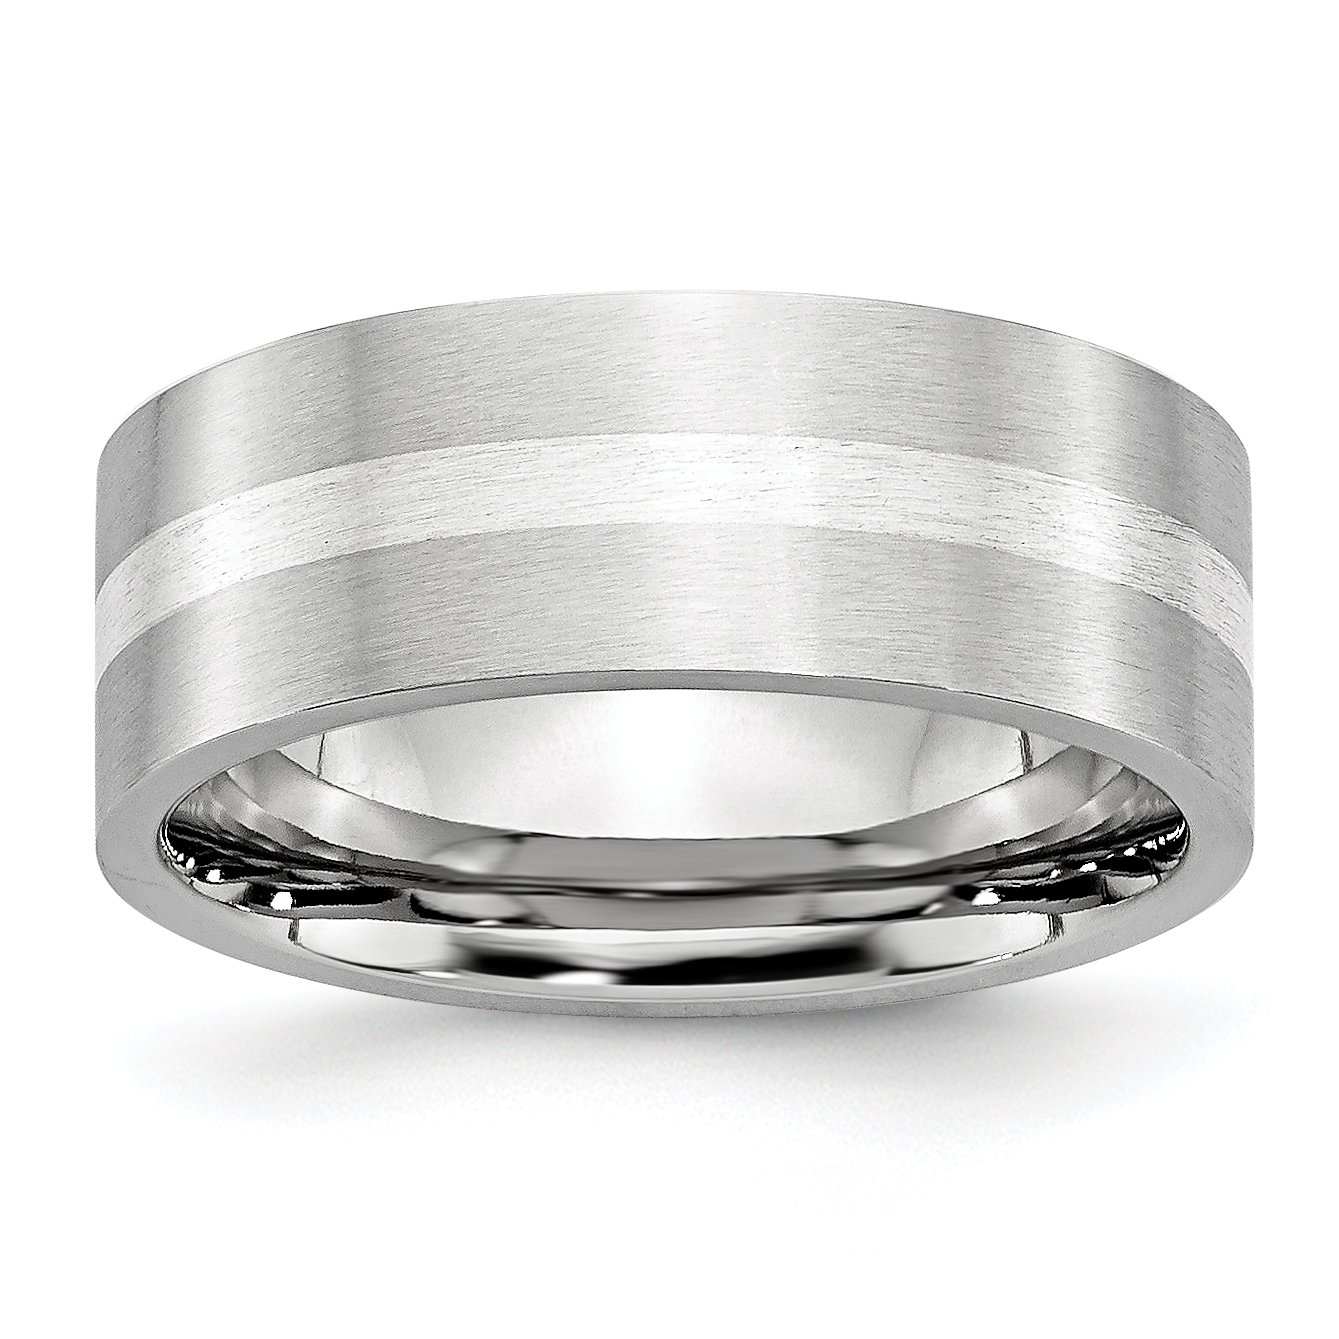 Cobalt Sterling Silver Inlay Satin 8mm Flat Band